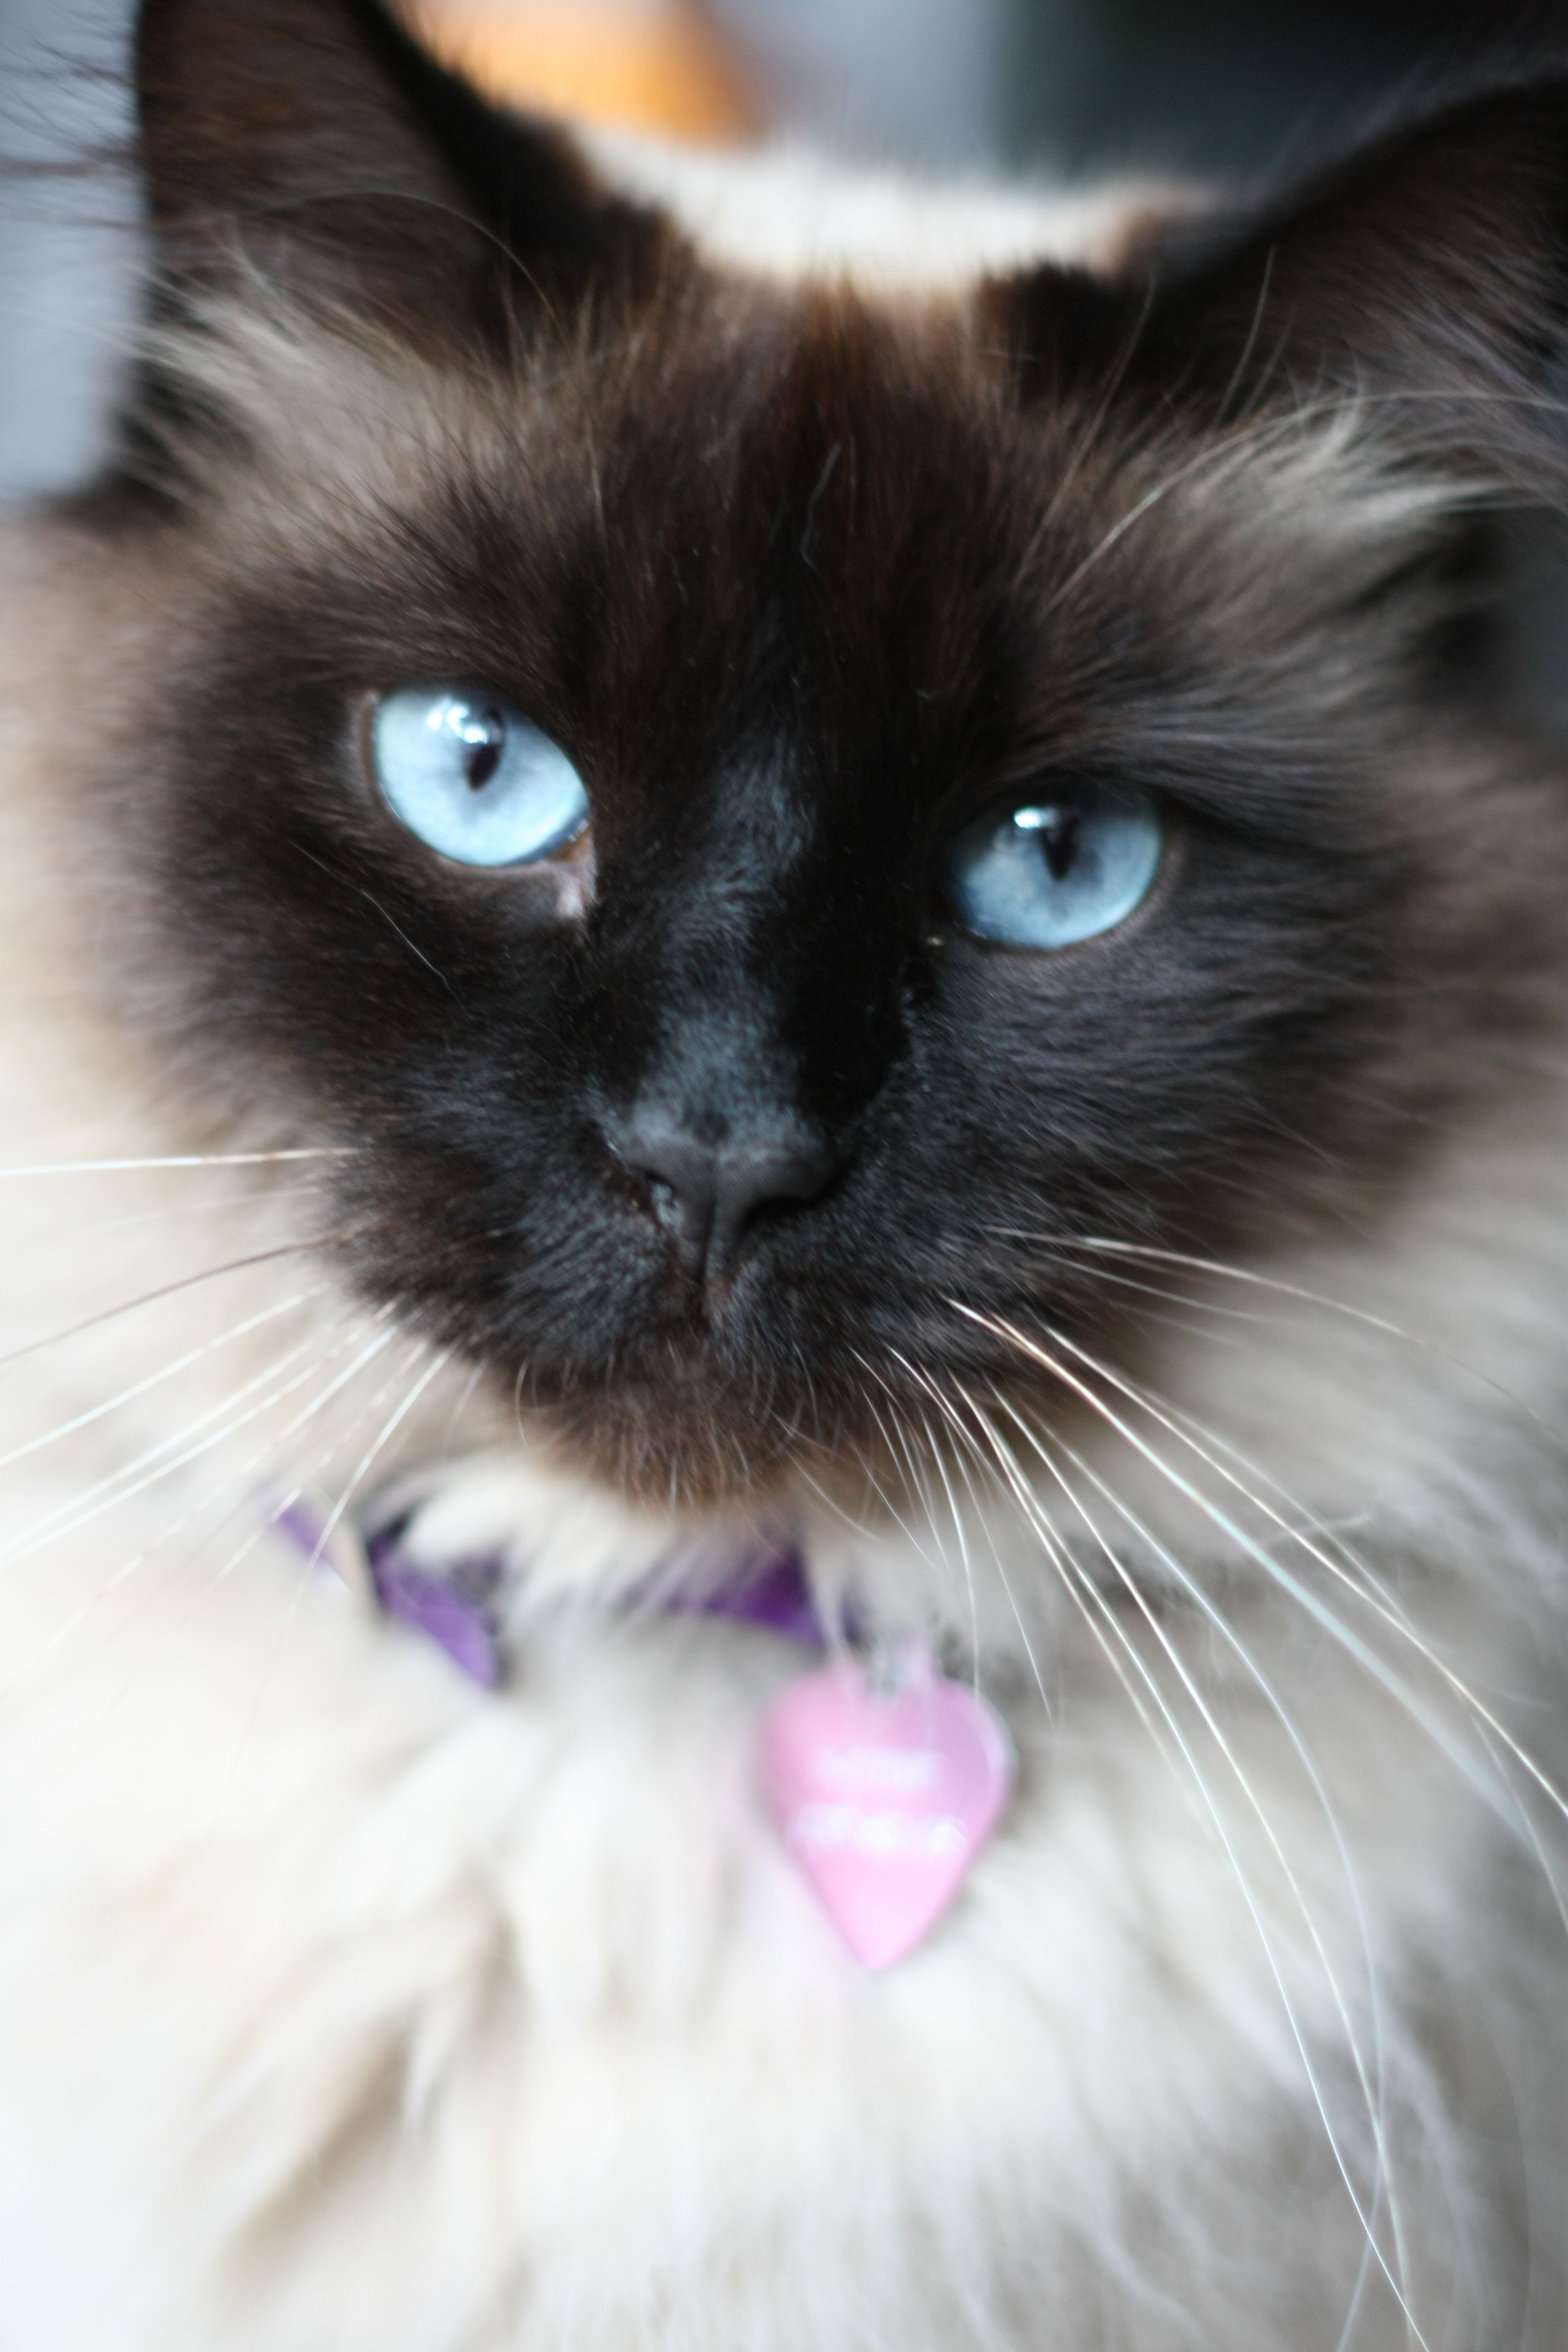 Balinese cat reminds me of Daphne when she was a kitten